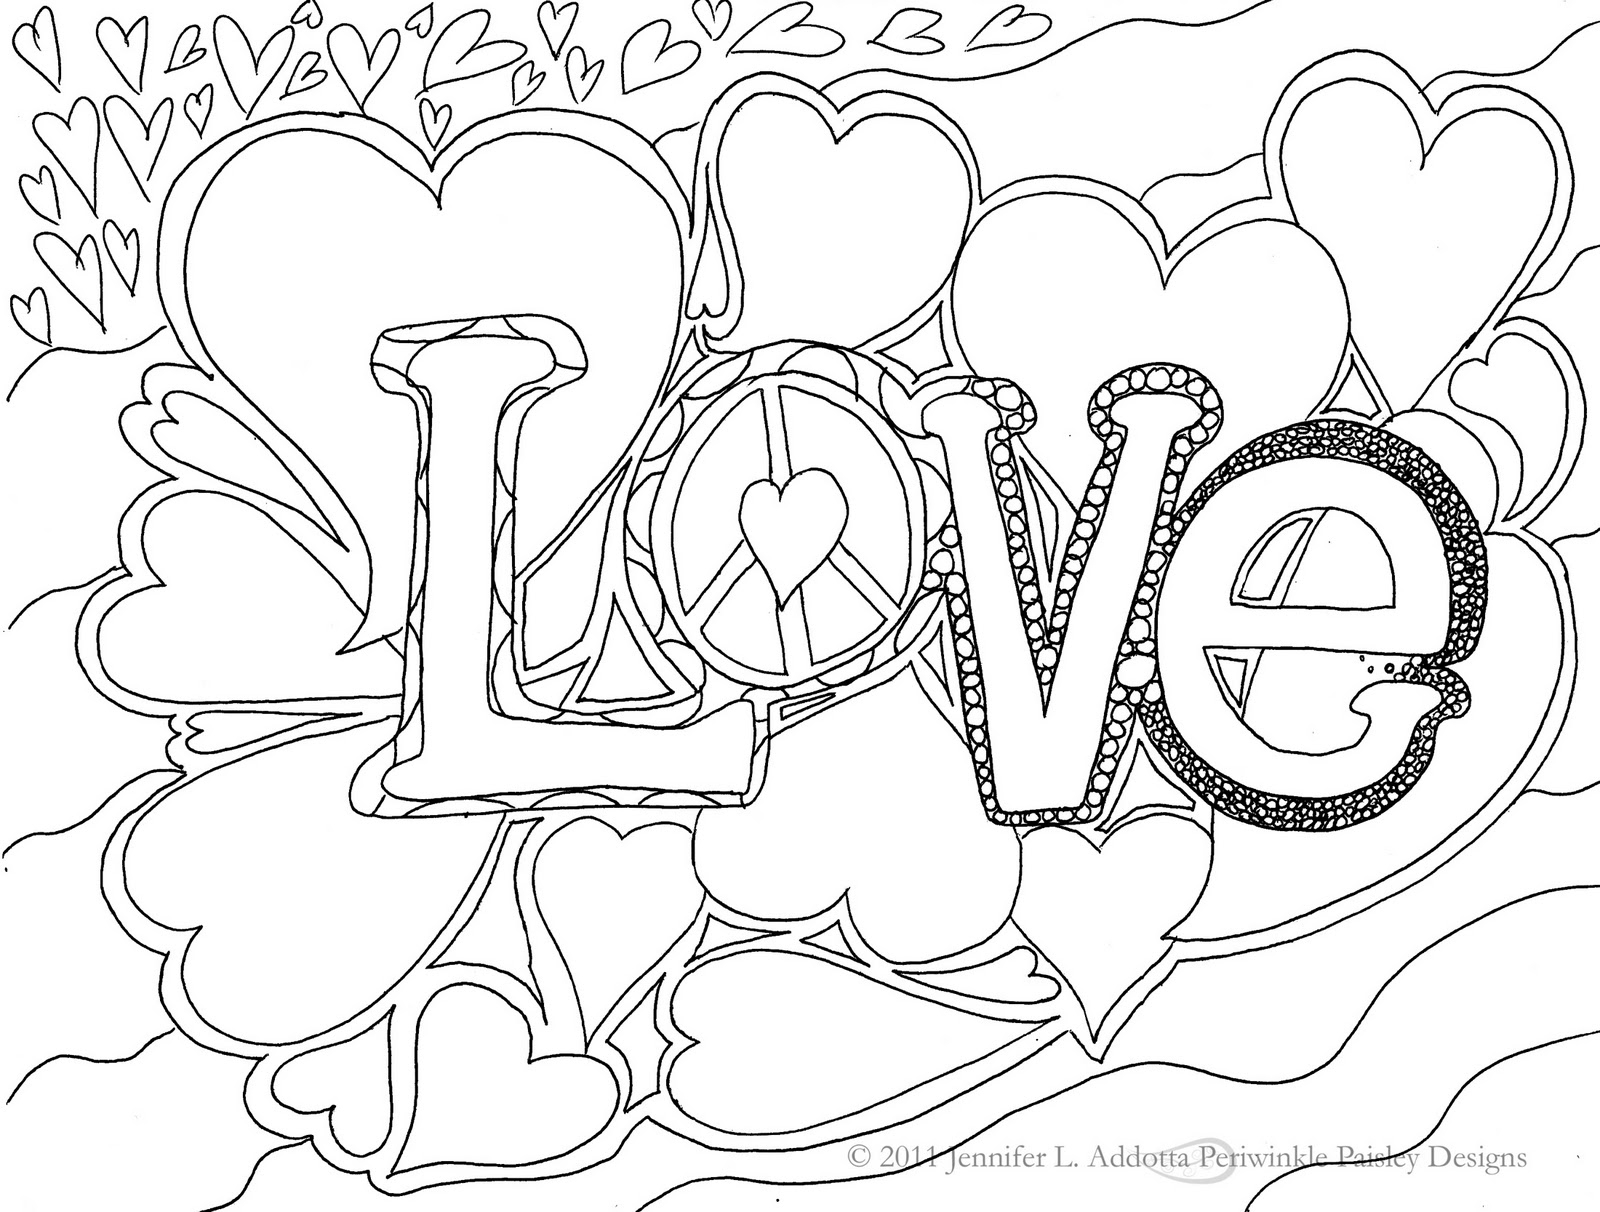 Boyfriend Coloring Pages At Getdrawings Free Download